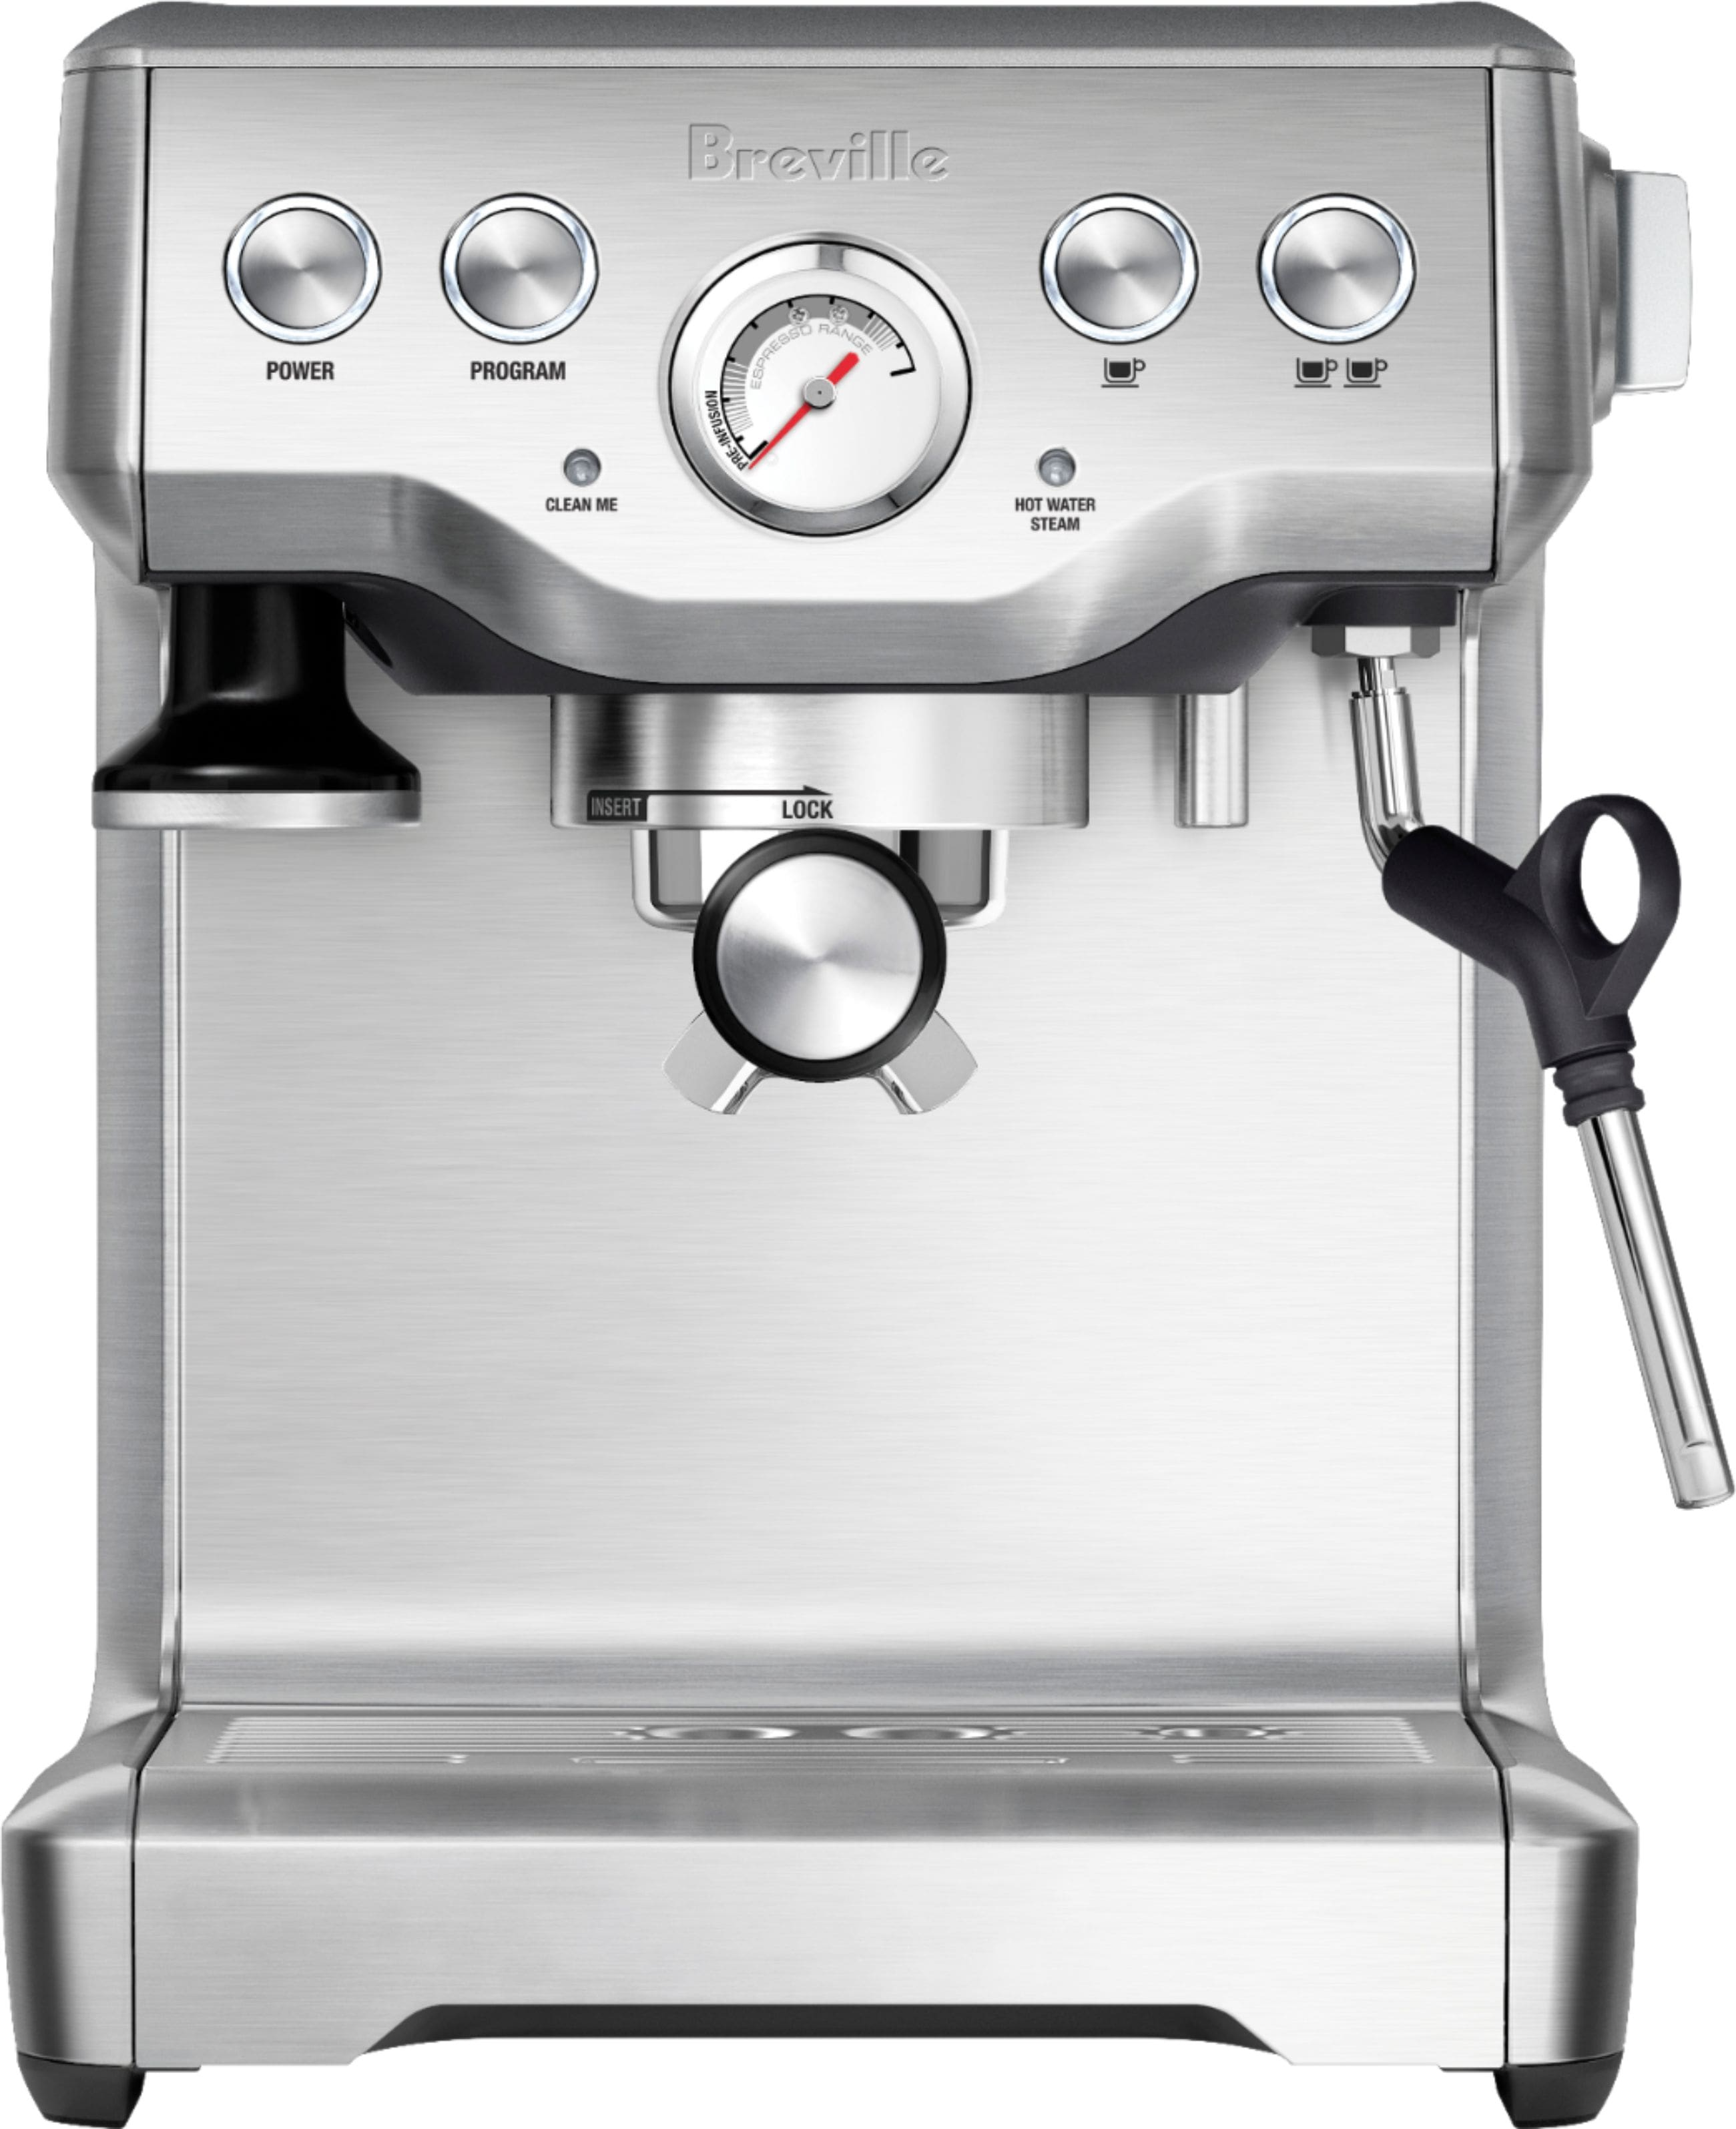 Breville BES840XL - the Infuser Manual Espresso Machine  - Stainless Steel $399; Breville BES880BSS $796.76; @ Best Buy + Free Shipping $399.99